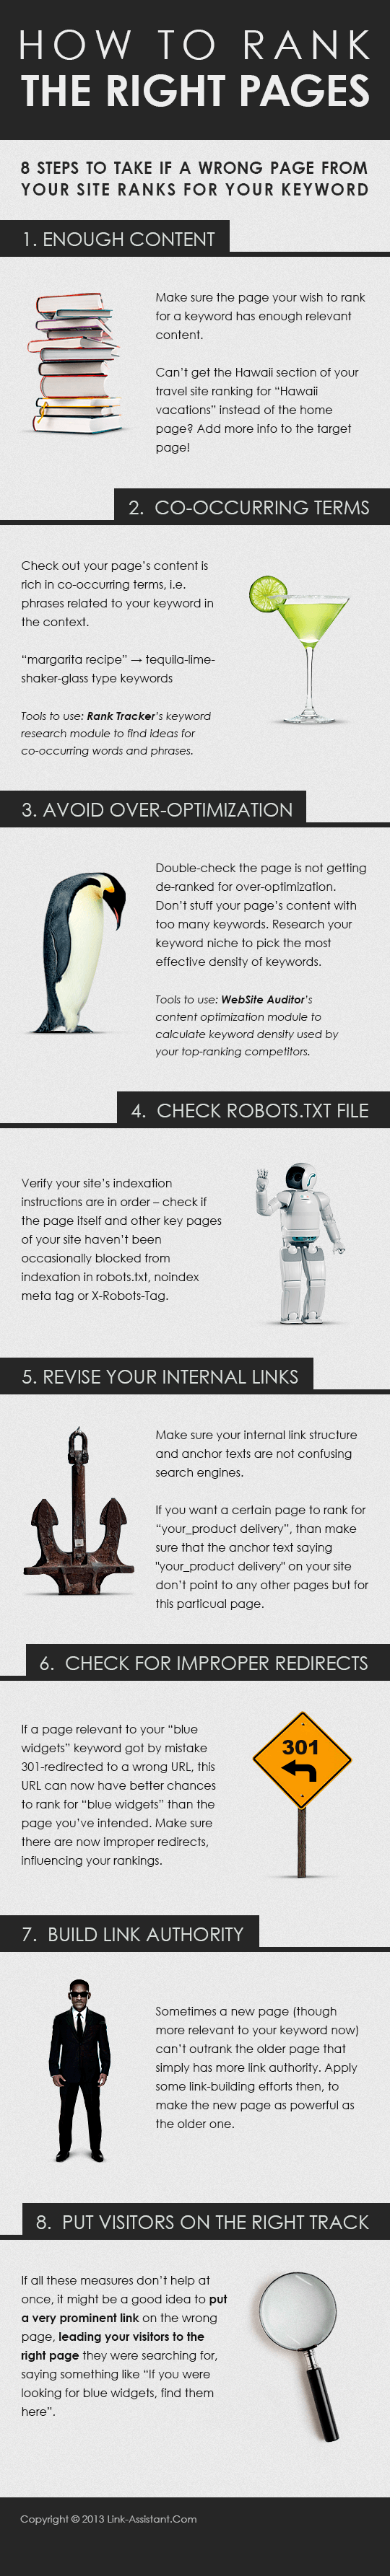 how to rank the right pages infographic